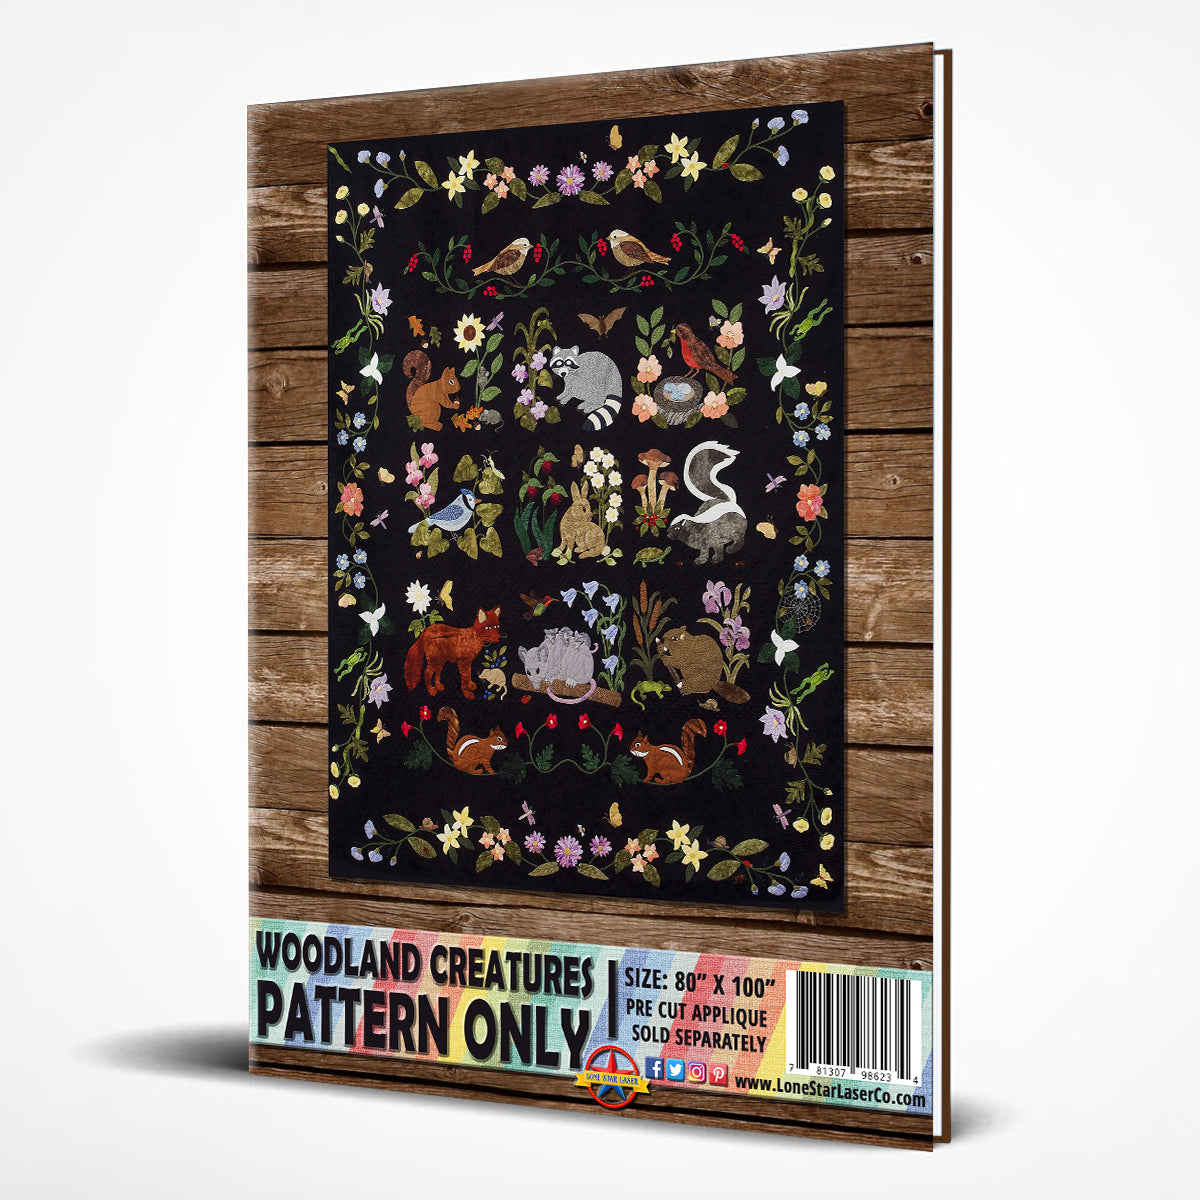 Woodland Creatures Pattern Only Laser Cut Amp Pre Fused